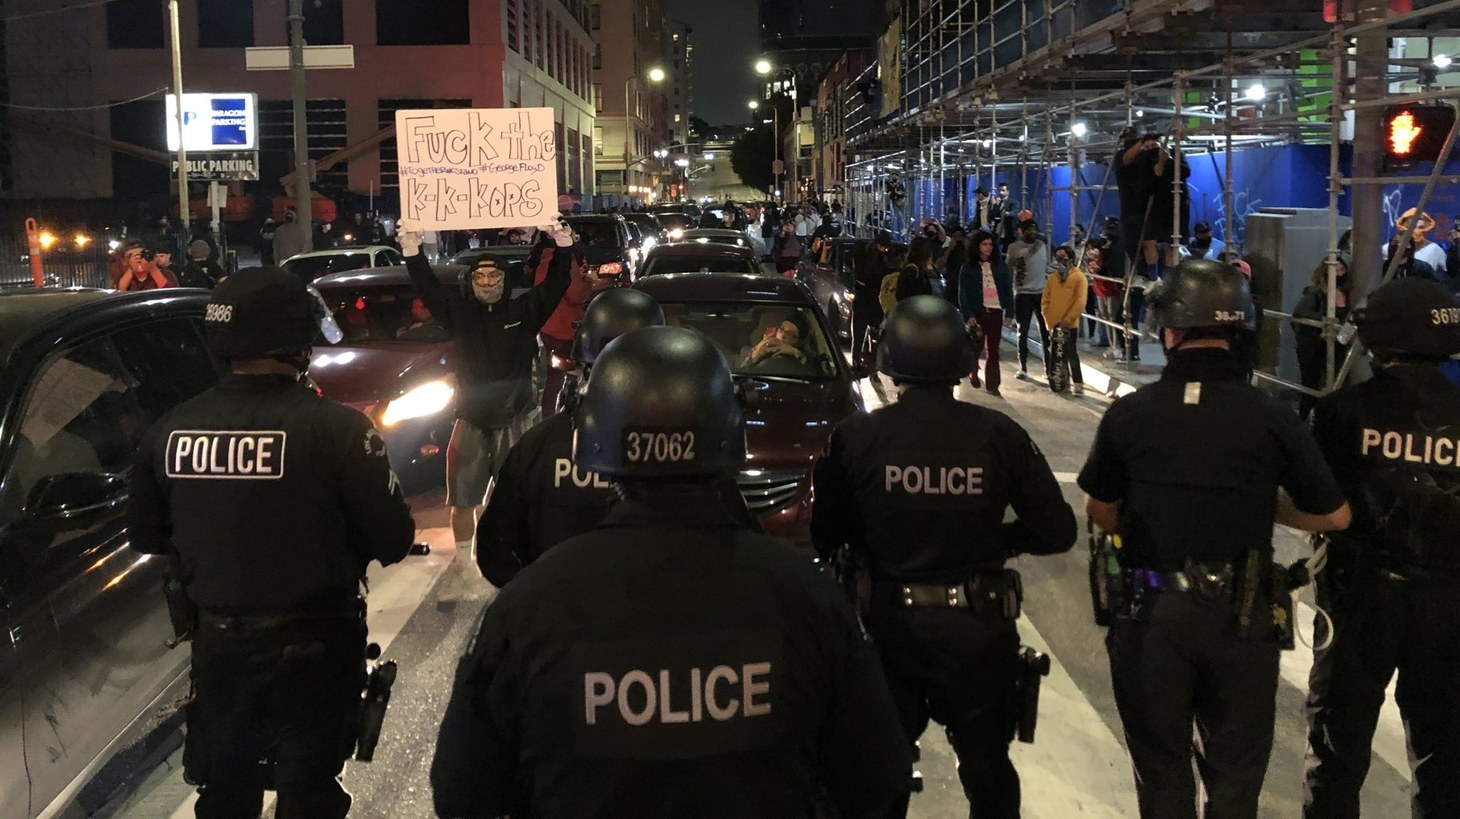 After many were arrested near City Hall, officers moved into other parts of downtown to disperse crowds and make more arrests.